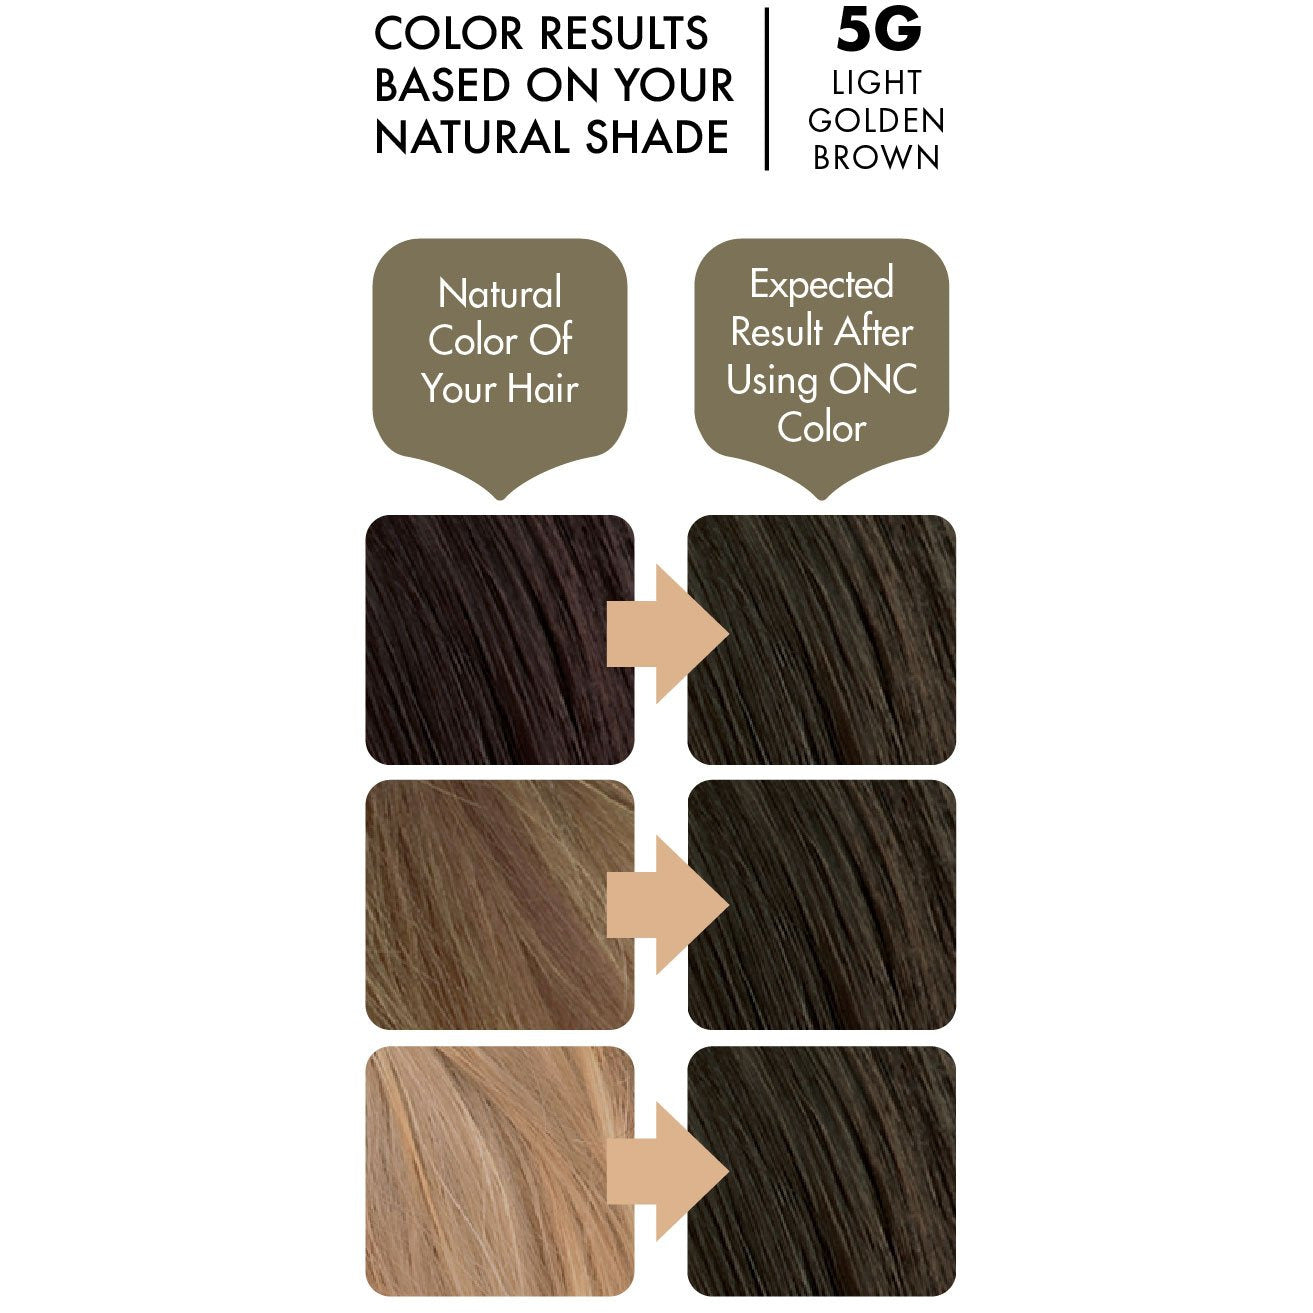 5g Light Golden Brown Hair Dye With Organic Ingredients 120 Ml 4 Fl Oz